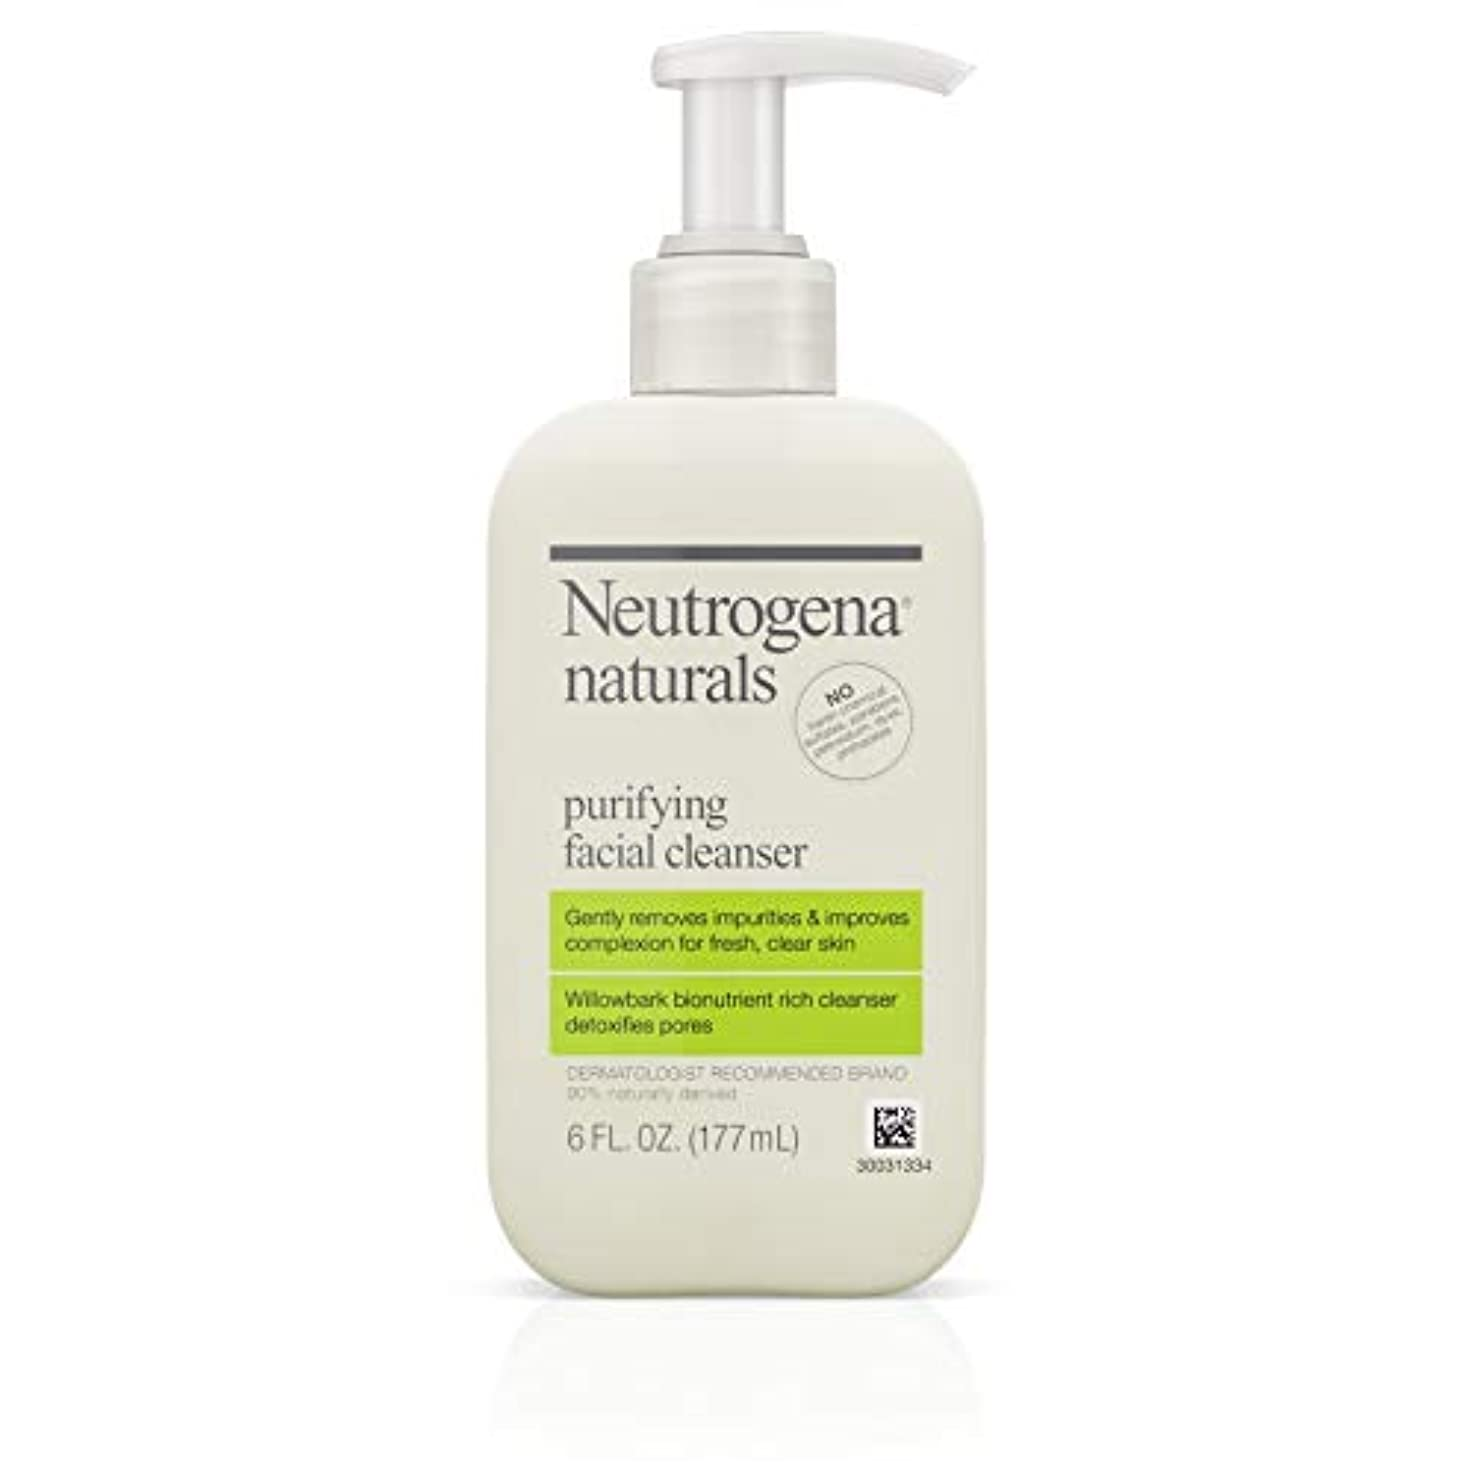 アパル法律平らにするNeutrogena Naturals Purifying Facial Cleanser 175 ml (並行輸入品)